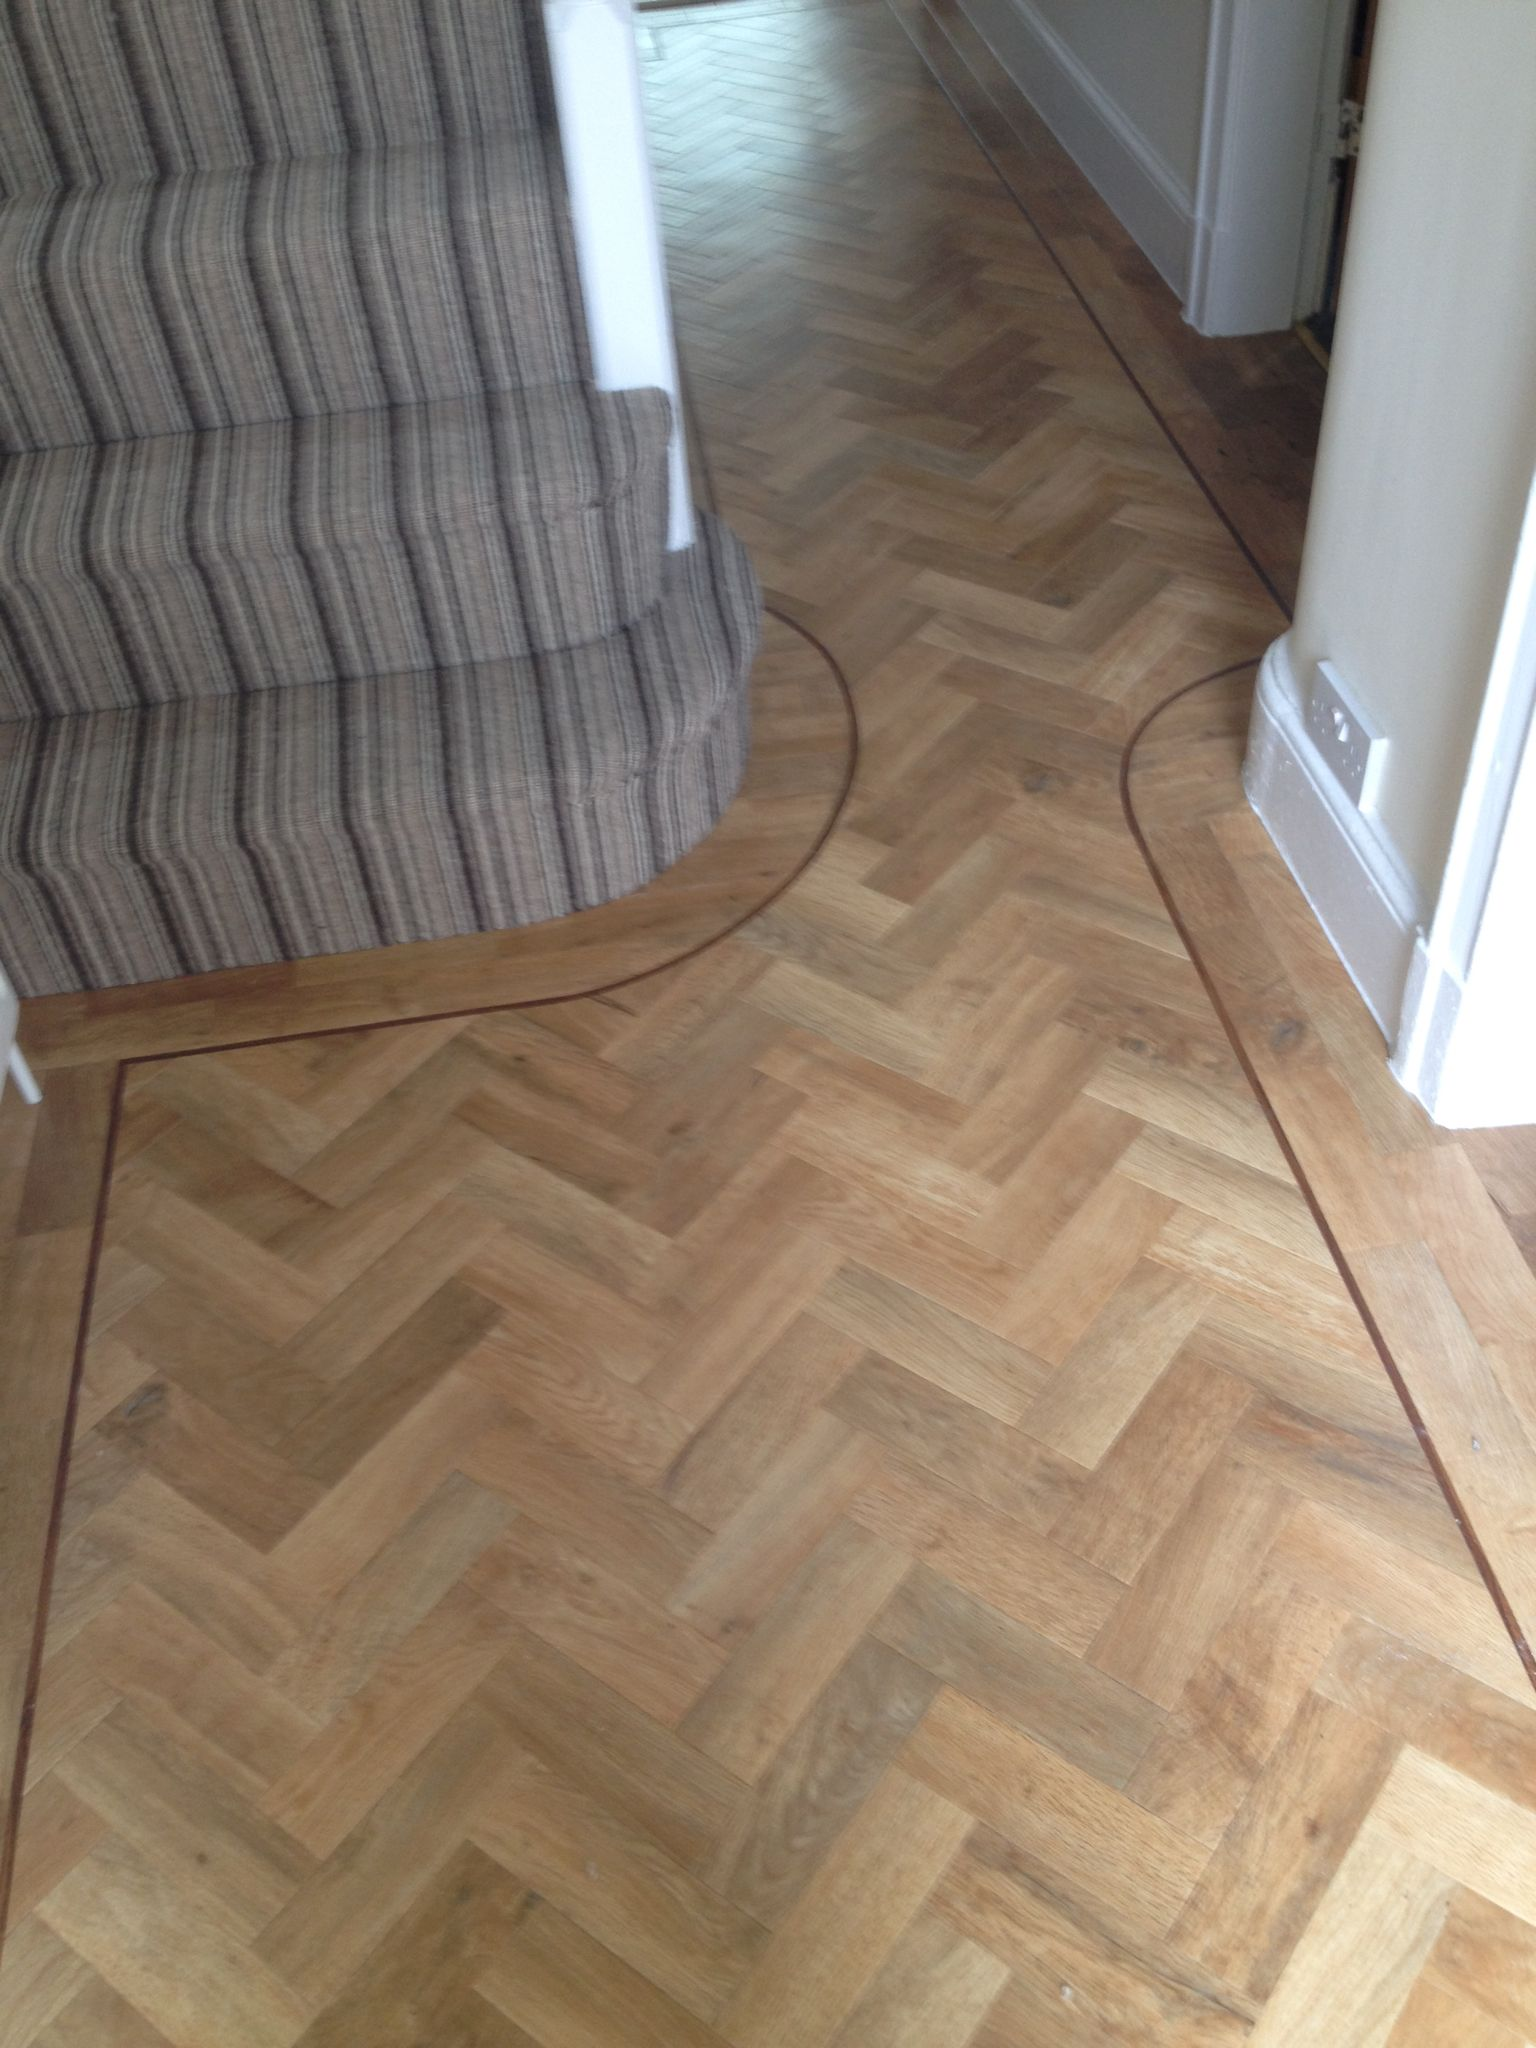 Telenzo Bakerloo Stripe Carpet with Karndean Parquet ...